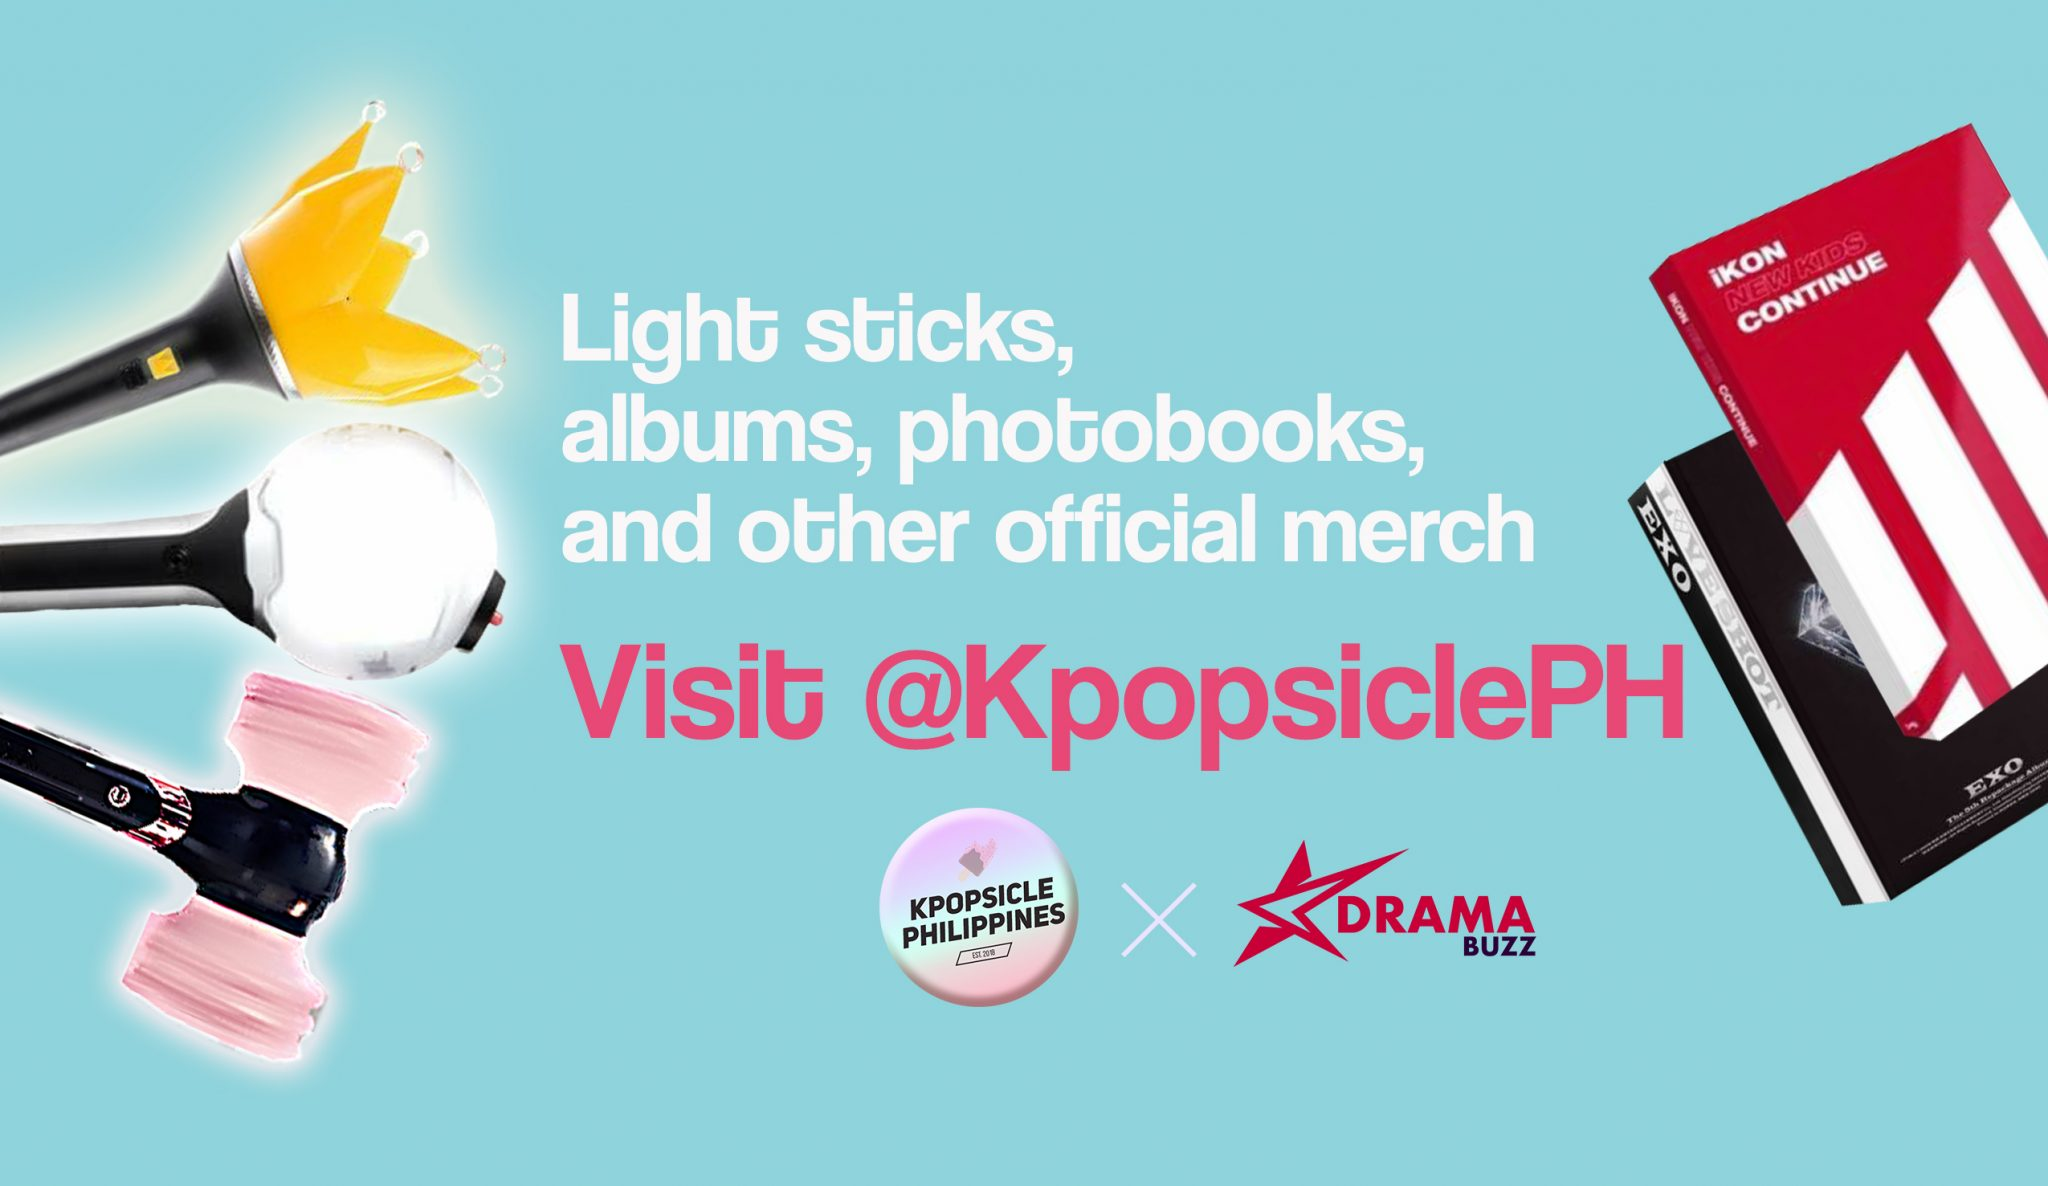 Your Fave Kpop Merch Is One Click Away: Kpopsicle PH is now